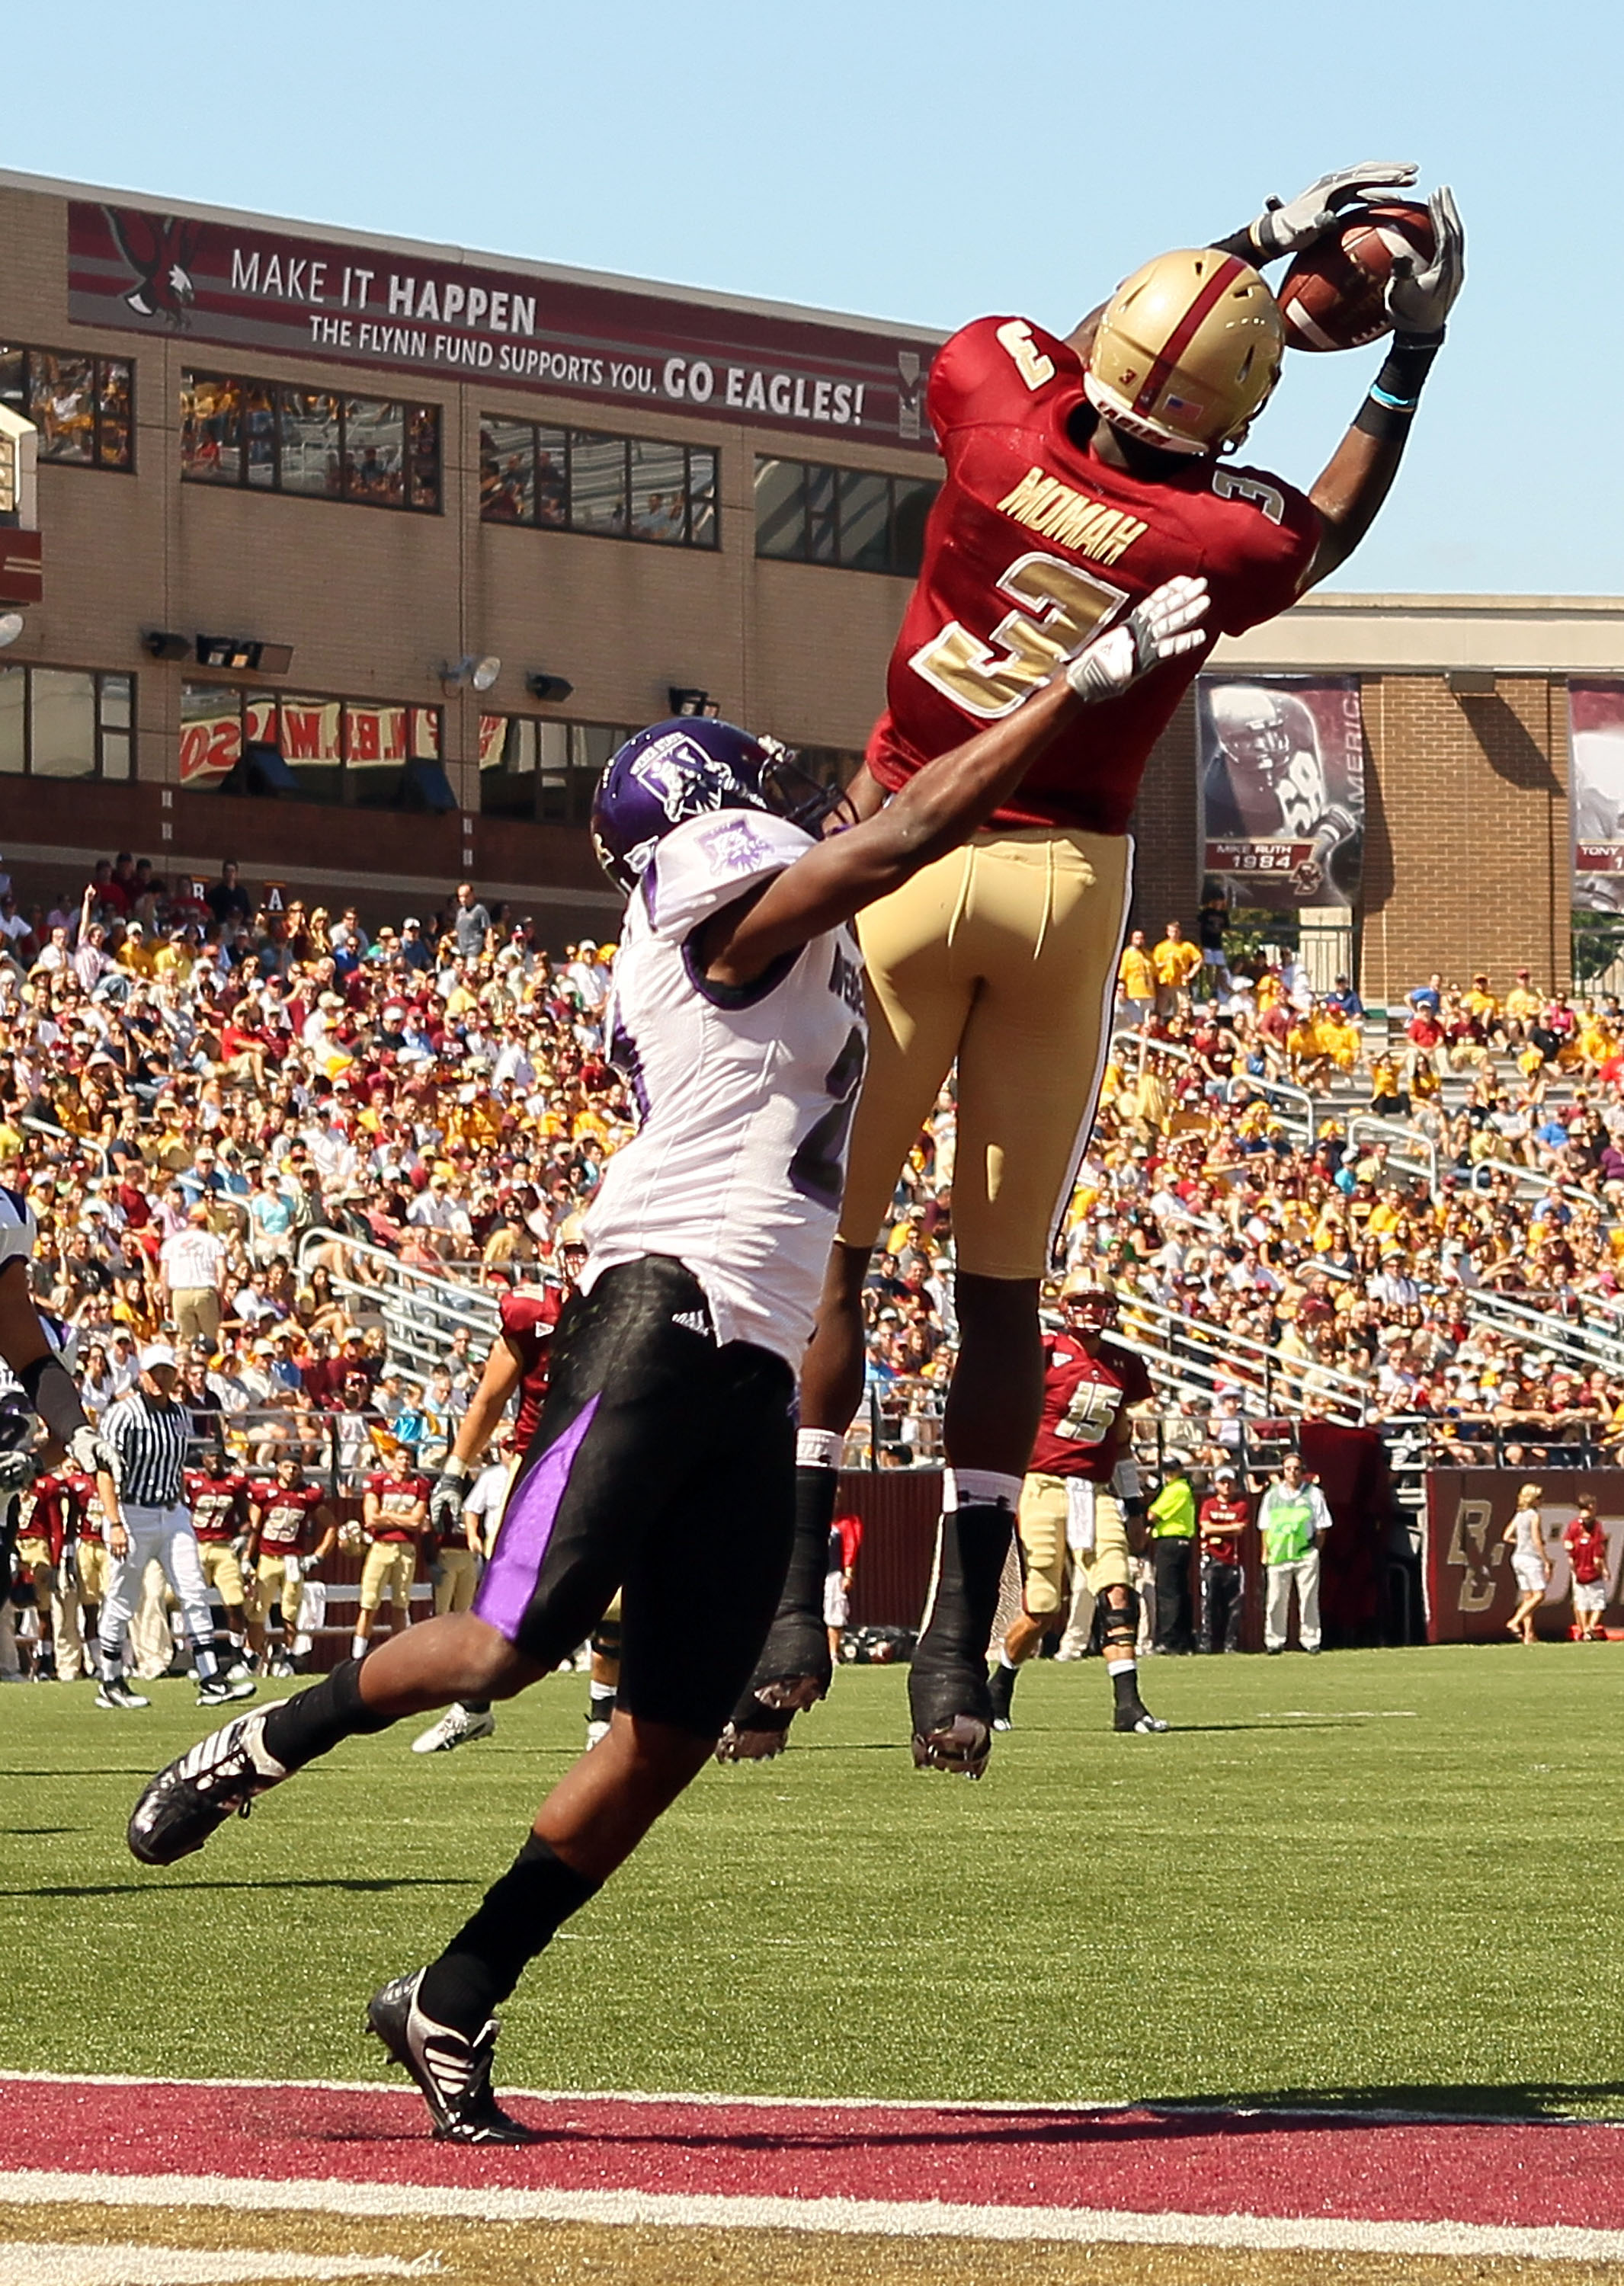 CHESTNUT HILL, MA - SEPTEMBER 04:  Ifeanyi Momah #3 of the Boston College Eagles makes the touchdown catch as Antwain Stutson #21 of the Weber State Wildcats defends on September 4, 2010 at Alumni Stadium in Chestnut Hill, Massachusetts.  (Photo by Elsa/G